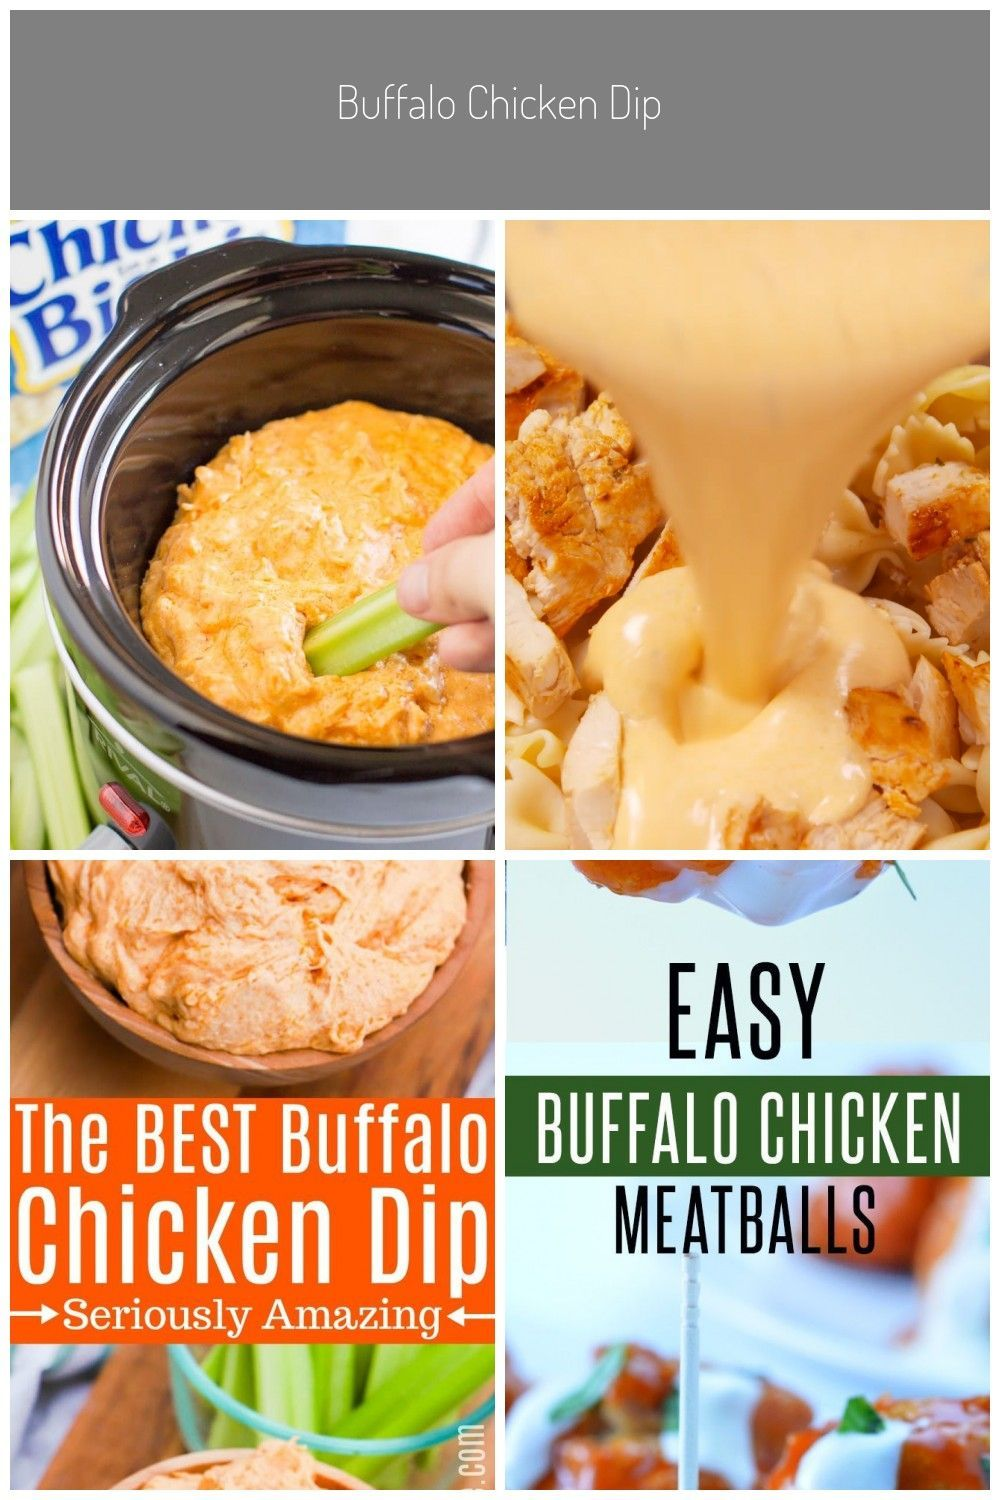 Buffalo Chicken Dip Recipe #buffalo chicken Buffalo Chicken Dip #buffalochickennachos Buffalo Chicken Dip Recipe #buffalo chicken Buffalo Chicken Dip #buffalochickennachos